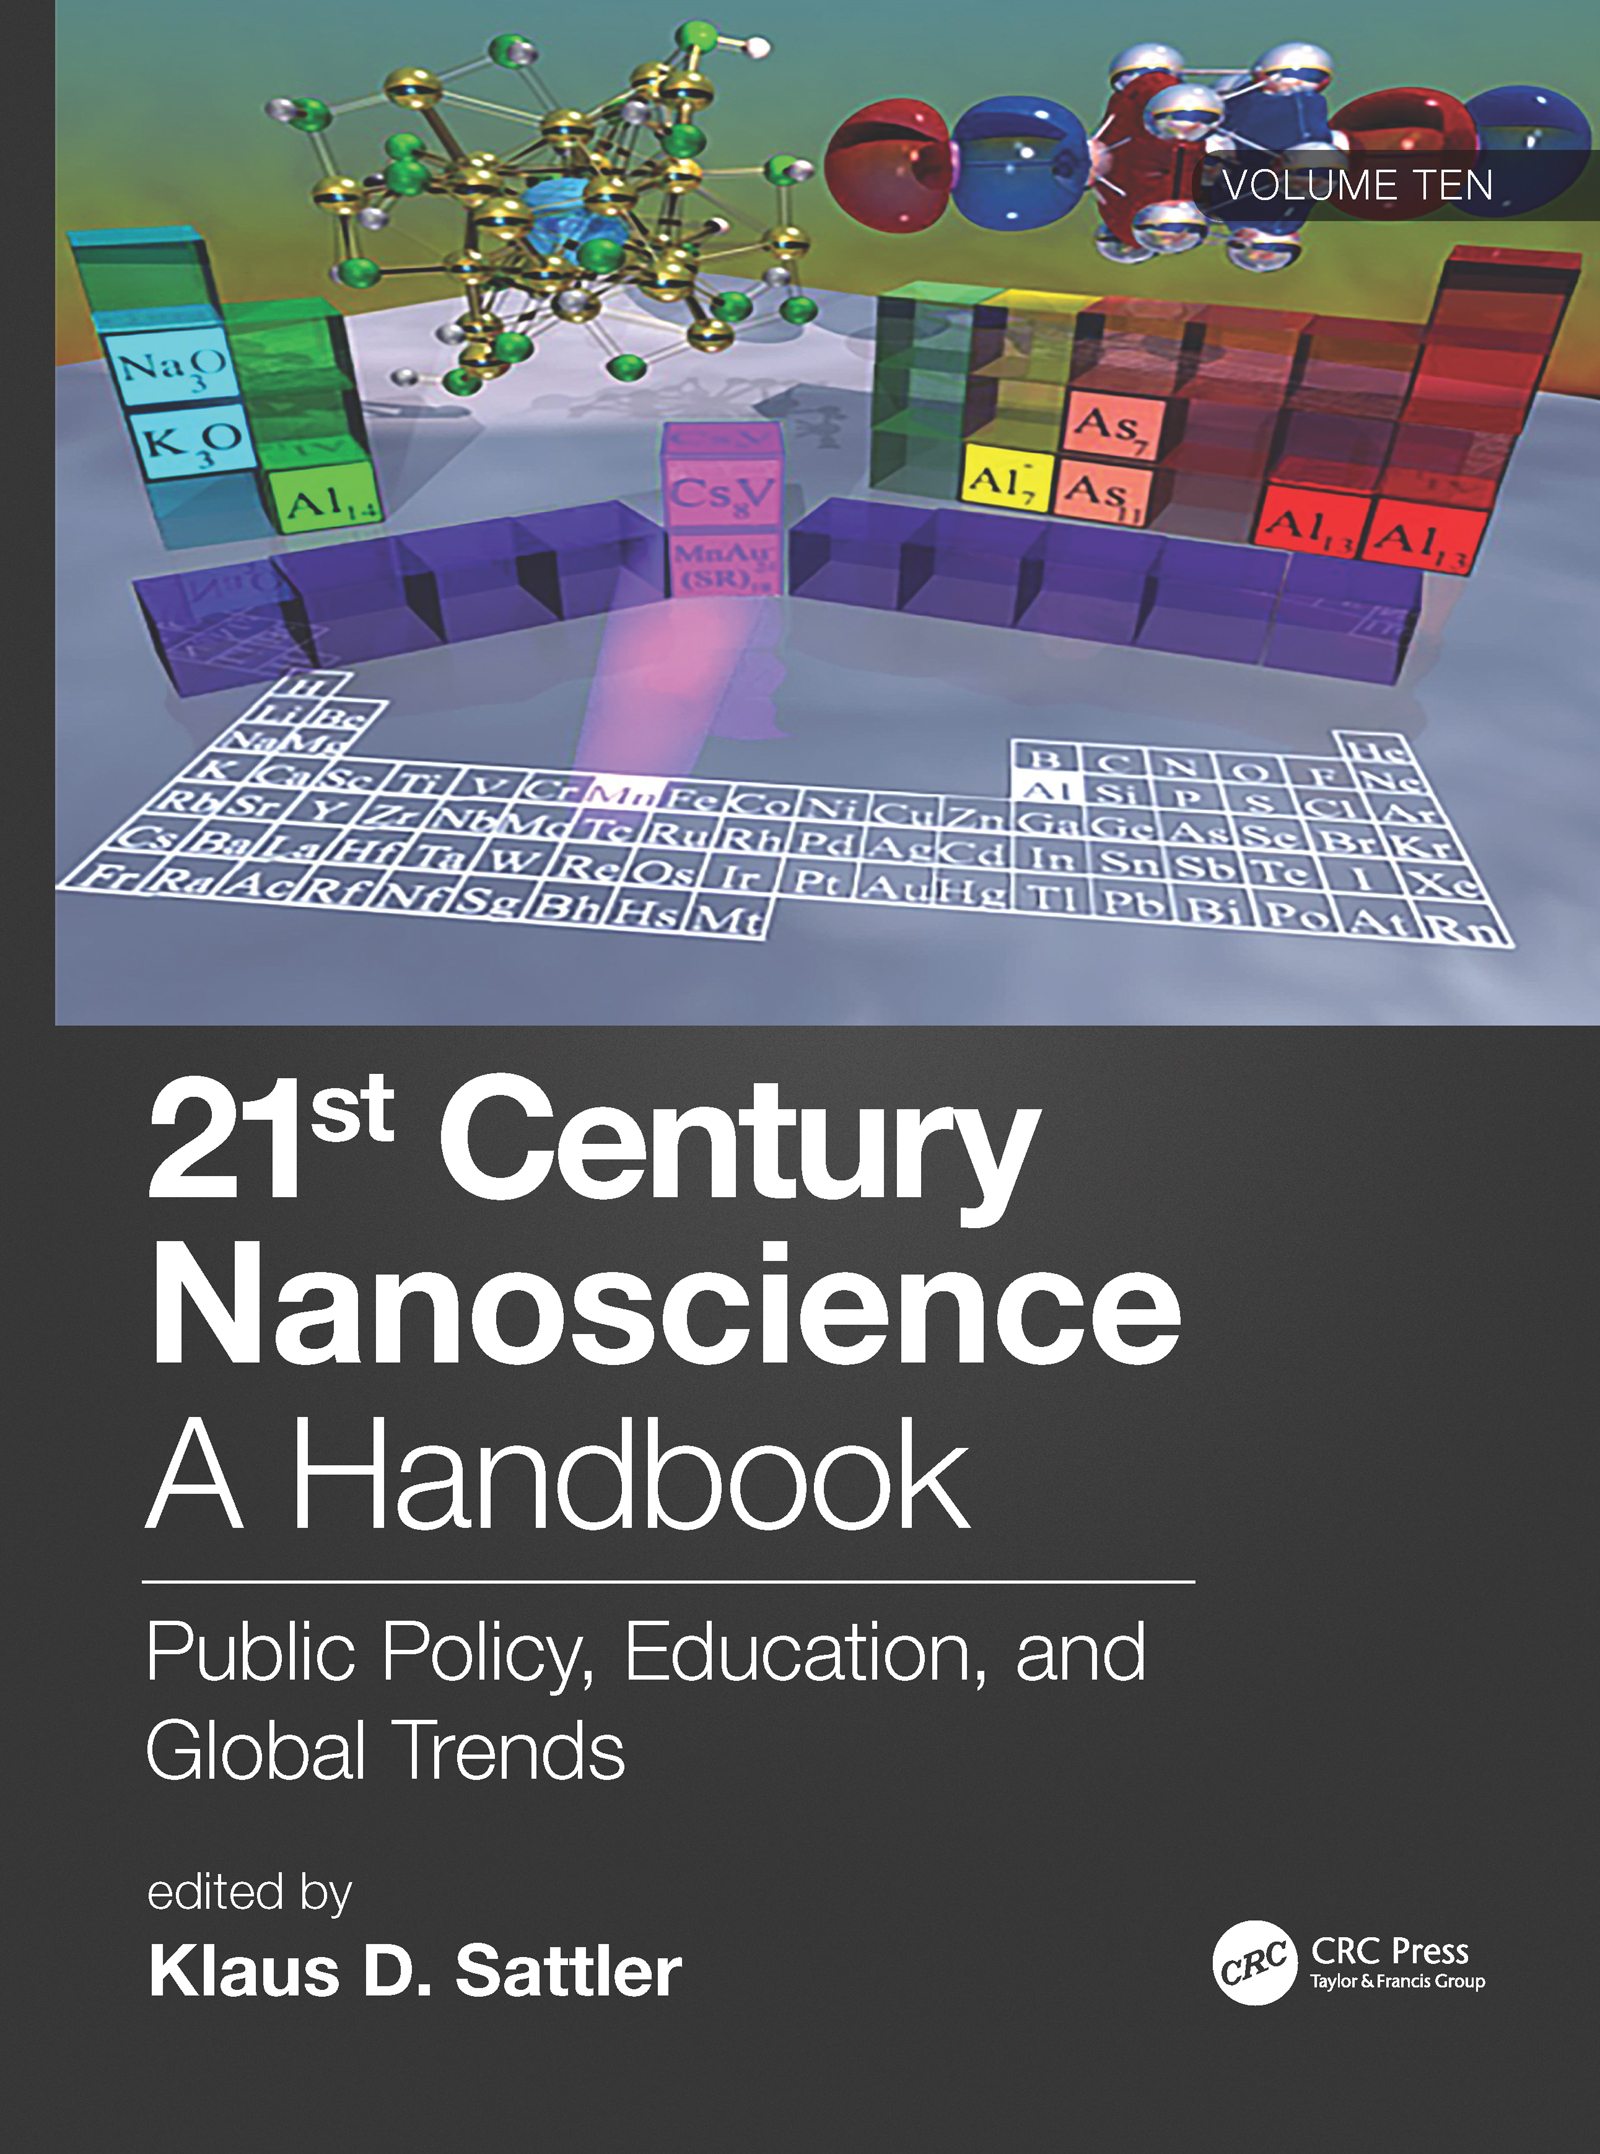 21st Century Nanoscience – A Handbook: Public Policy, Education, and Global Trends (Volume Ten) book cover